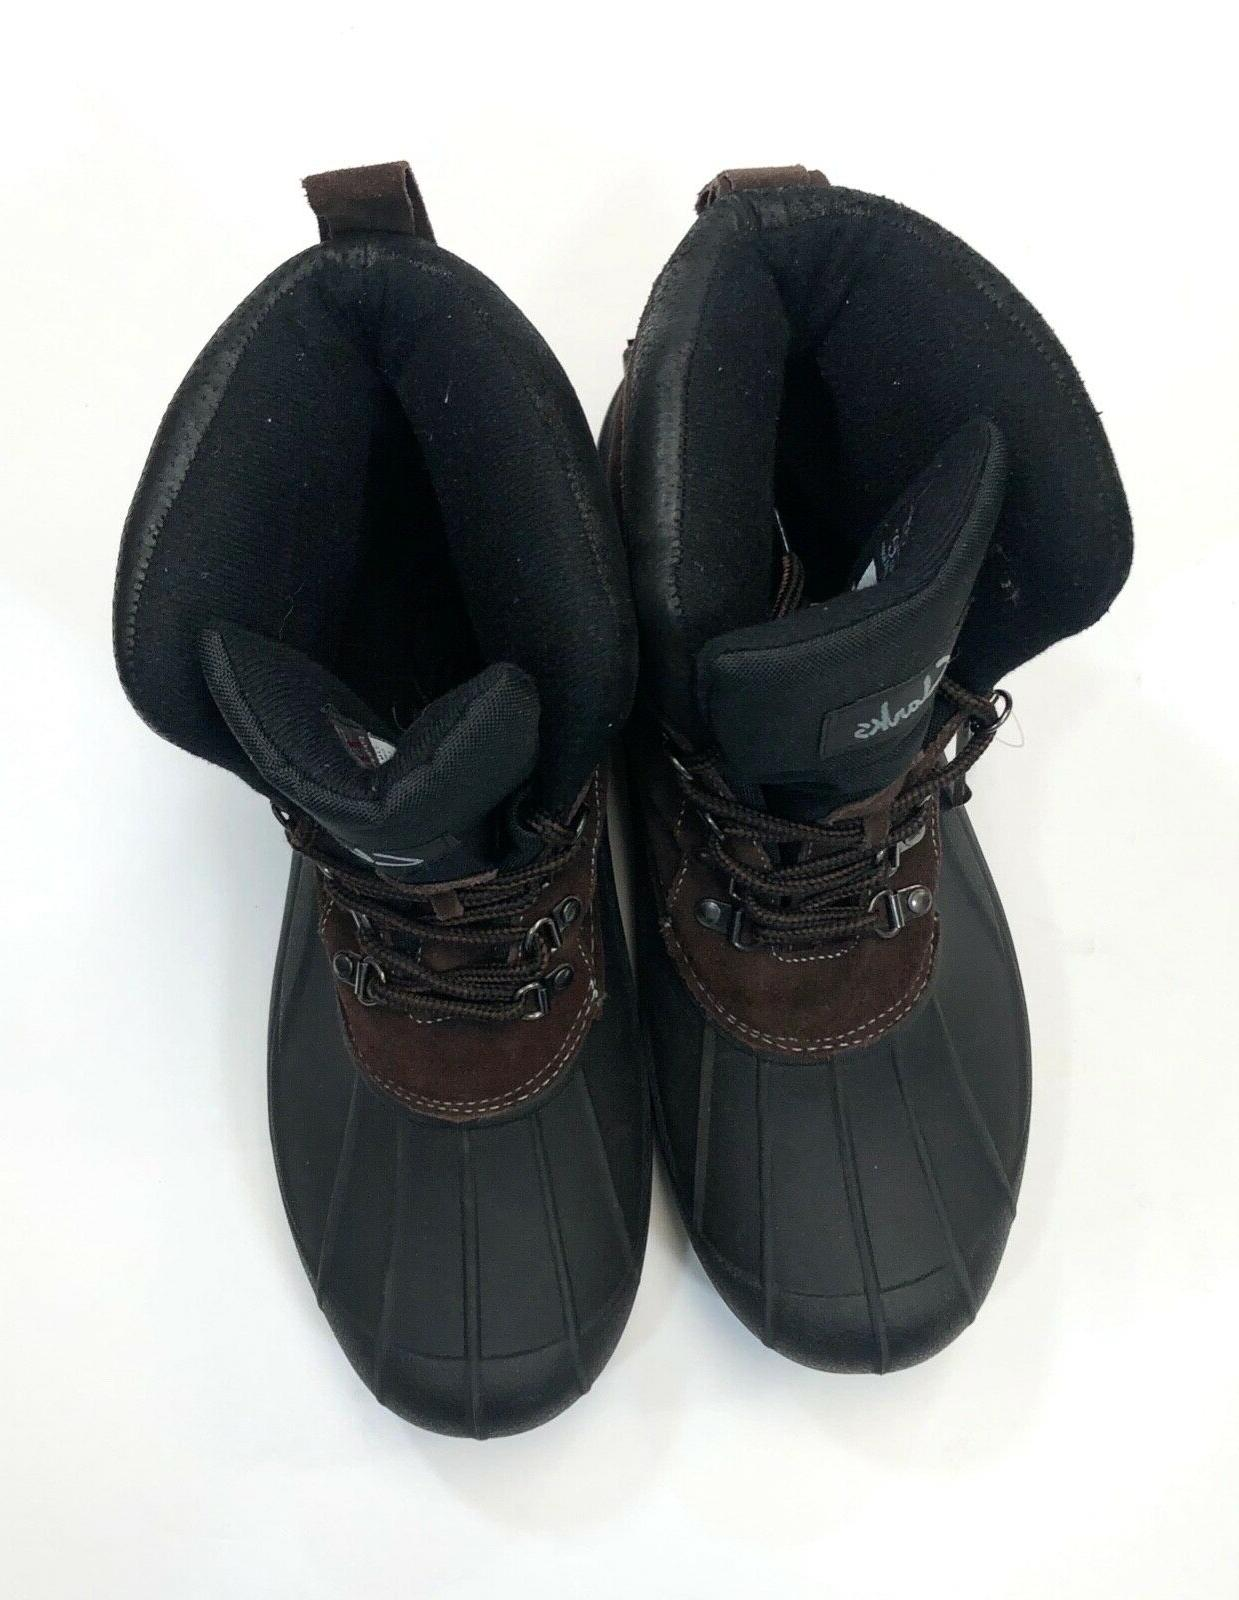 Clarks Insulated Leather Winter Snow Boots Mens 12